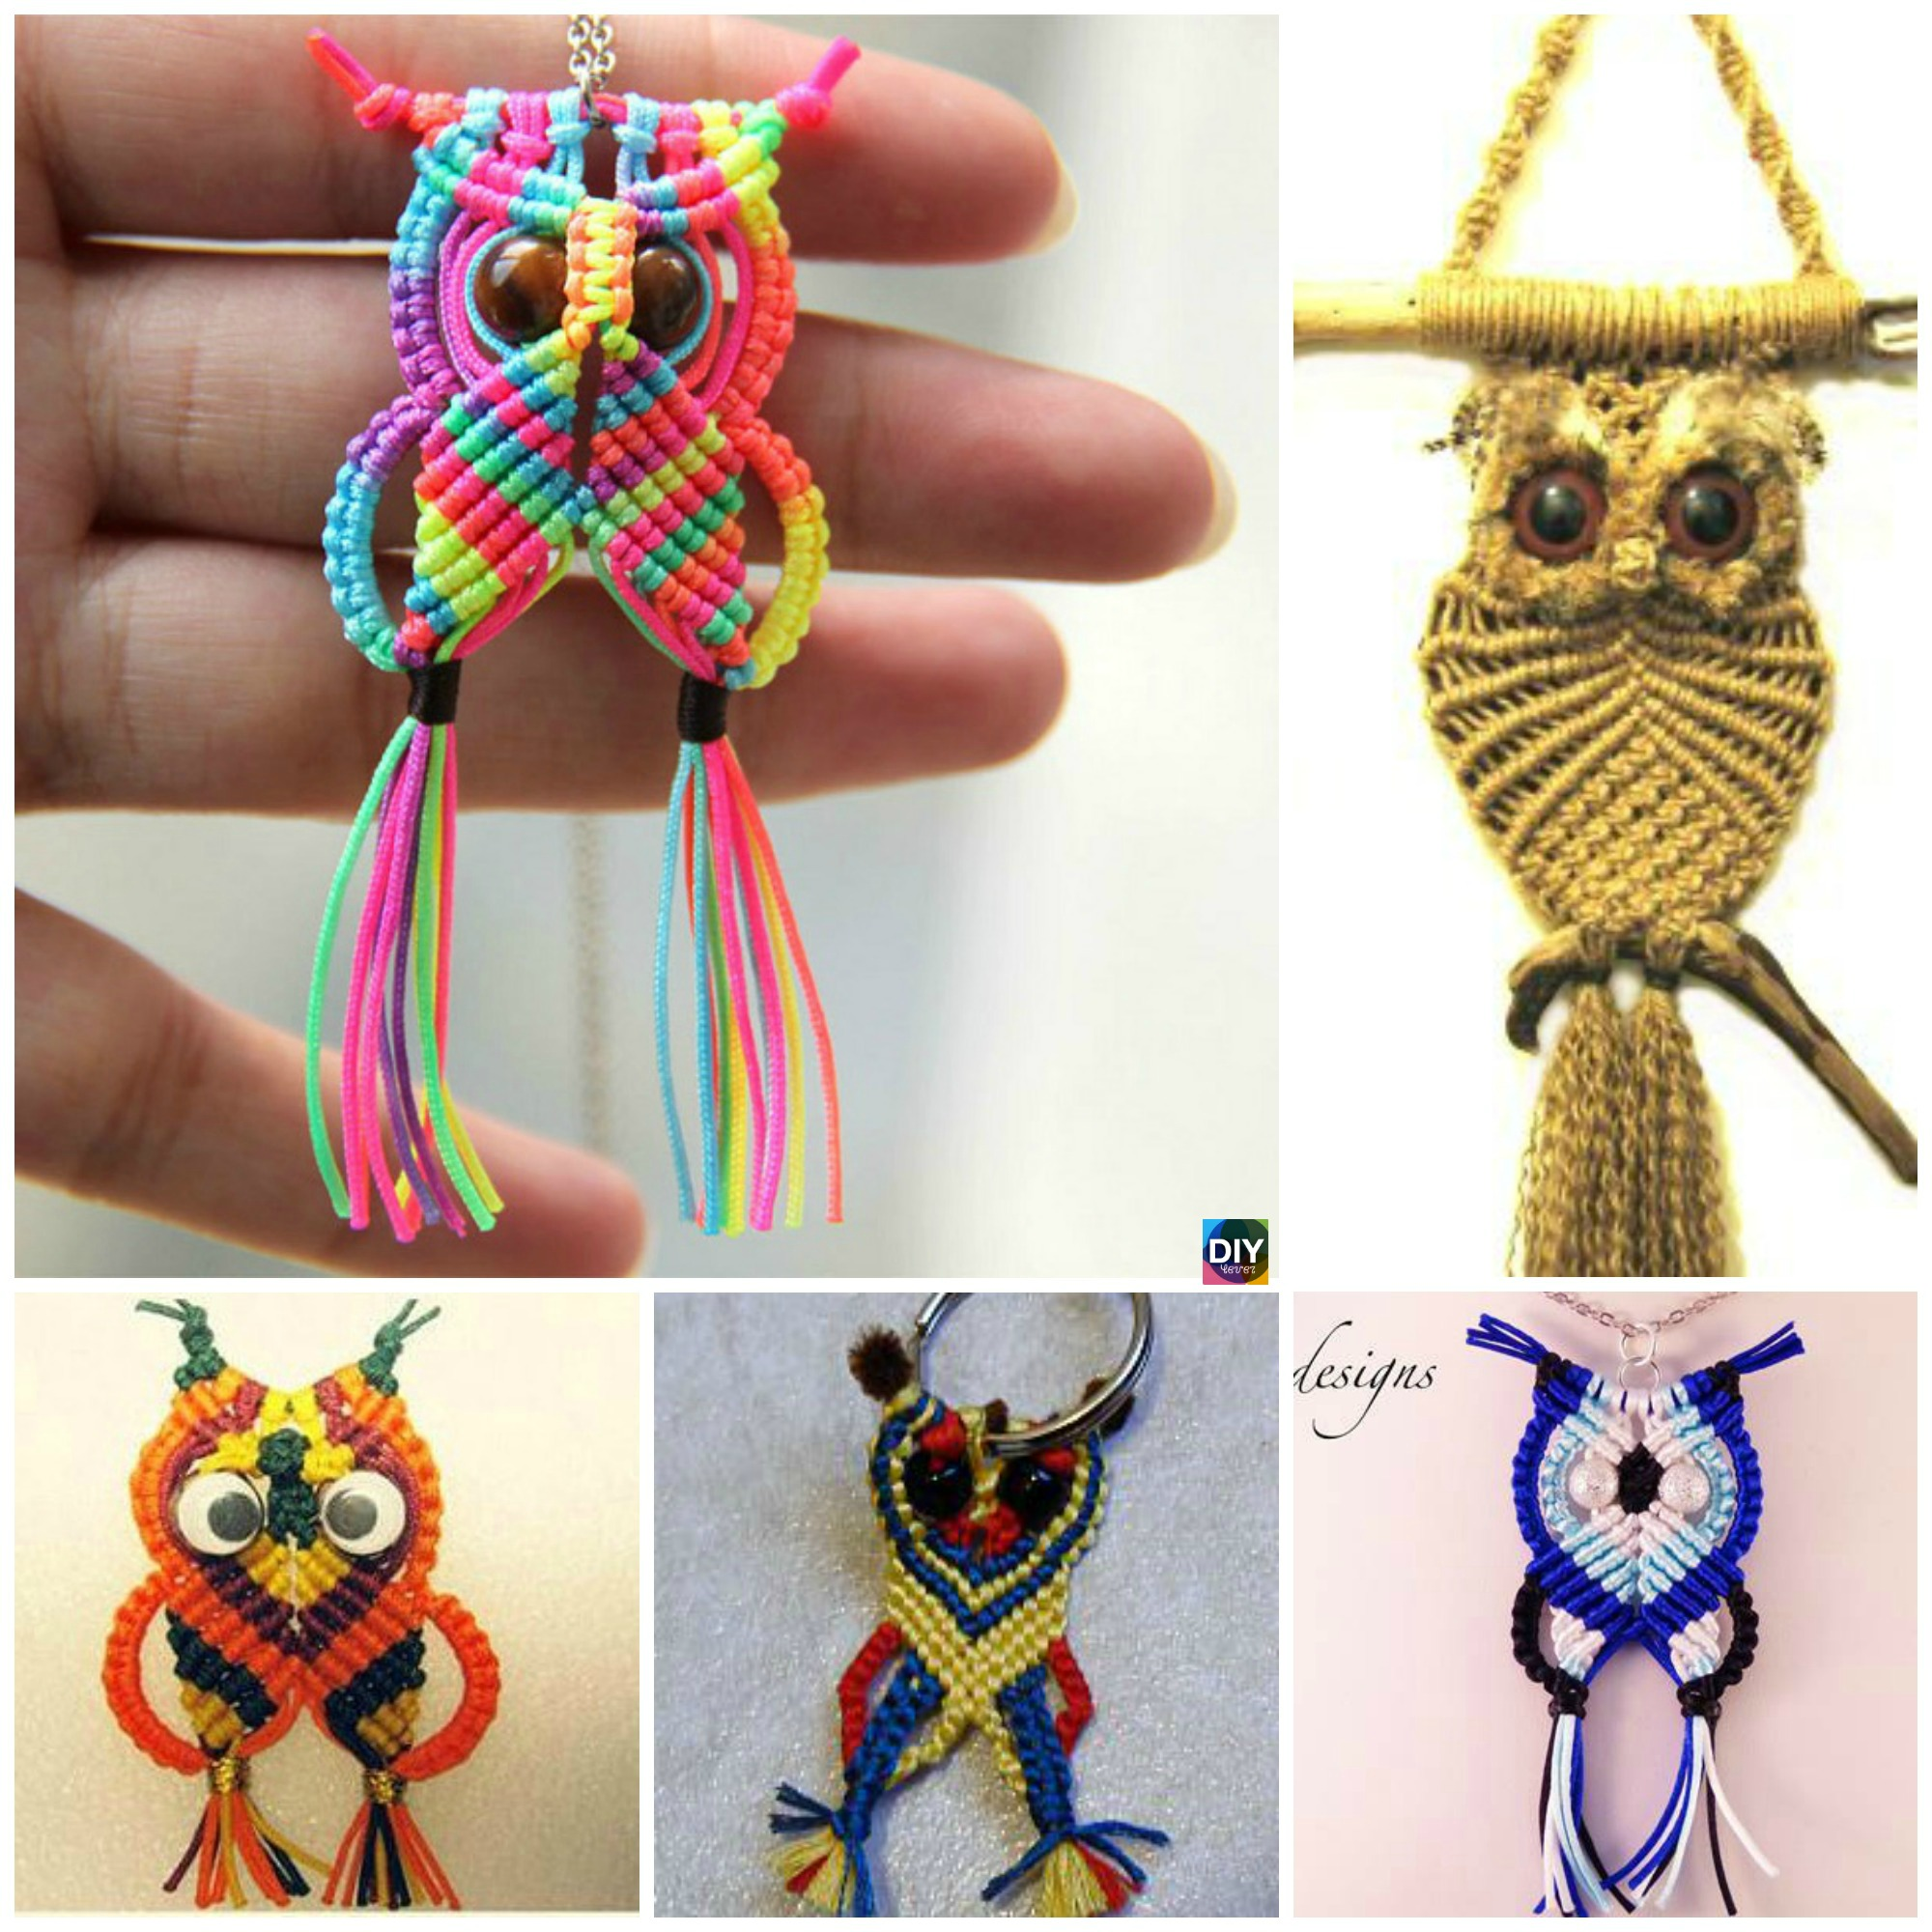 diy4ever- How to DIY Rainbow Macrame Owls